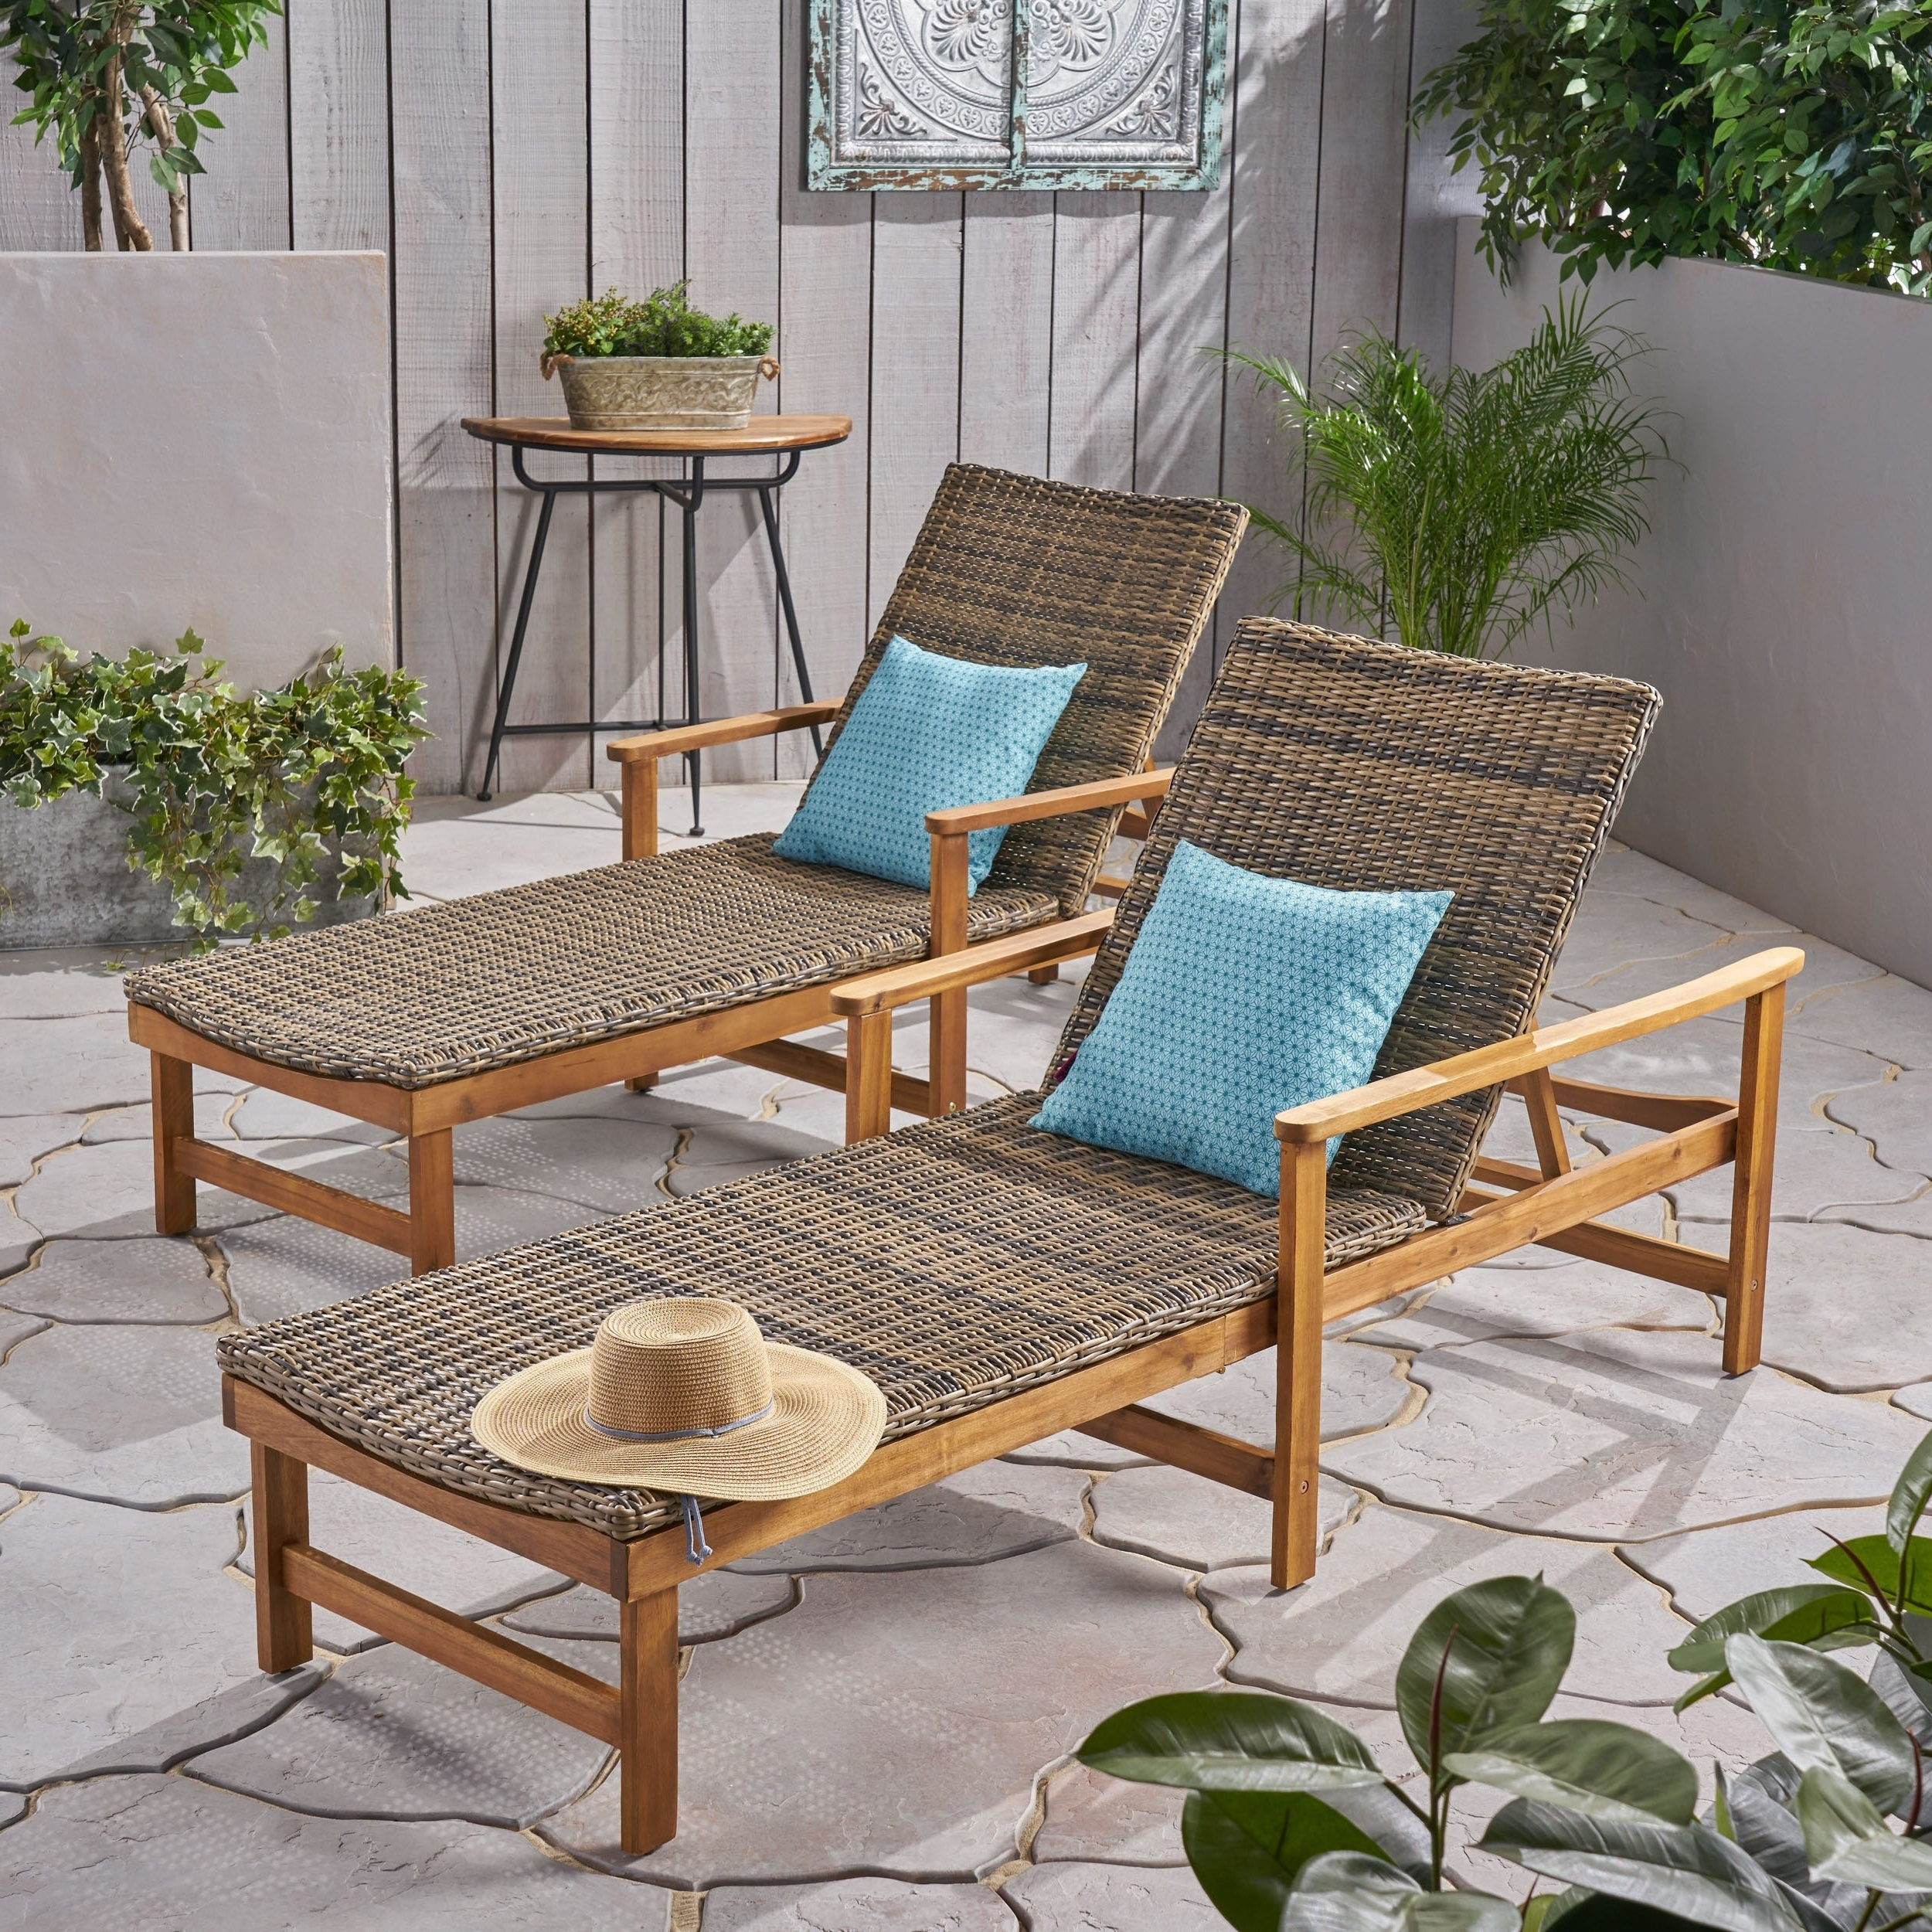 Recent Hampton Outdoor Chaise Lounges Acacia Wood And Wicker With Regard To Hampton Outdoor Chaise Lounges Acacia Wood And Wicker (Set Of 2) Christopher Knight Home (Gallery 2 of 25)